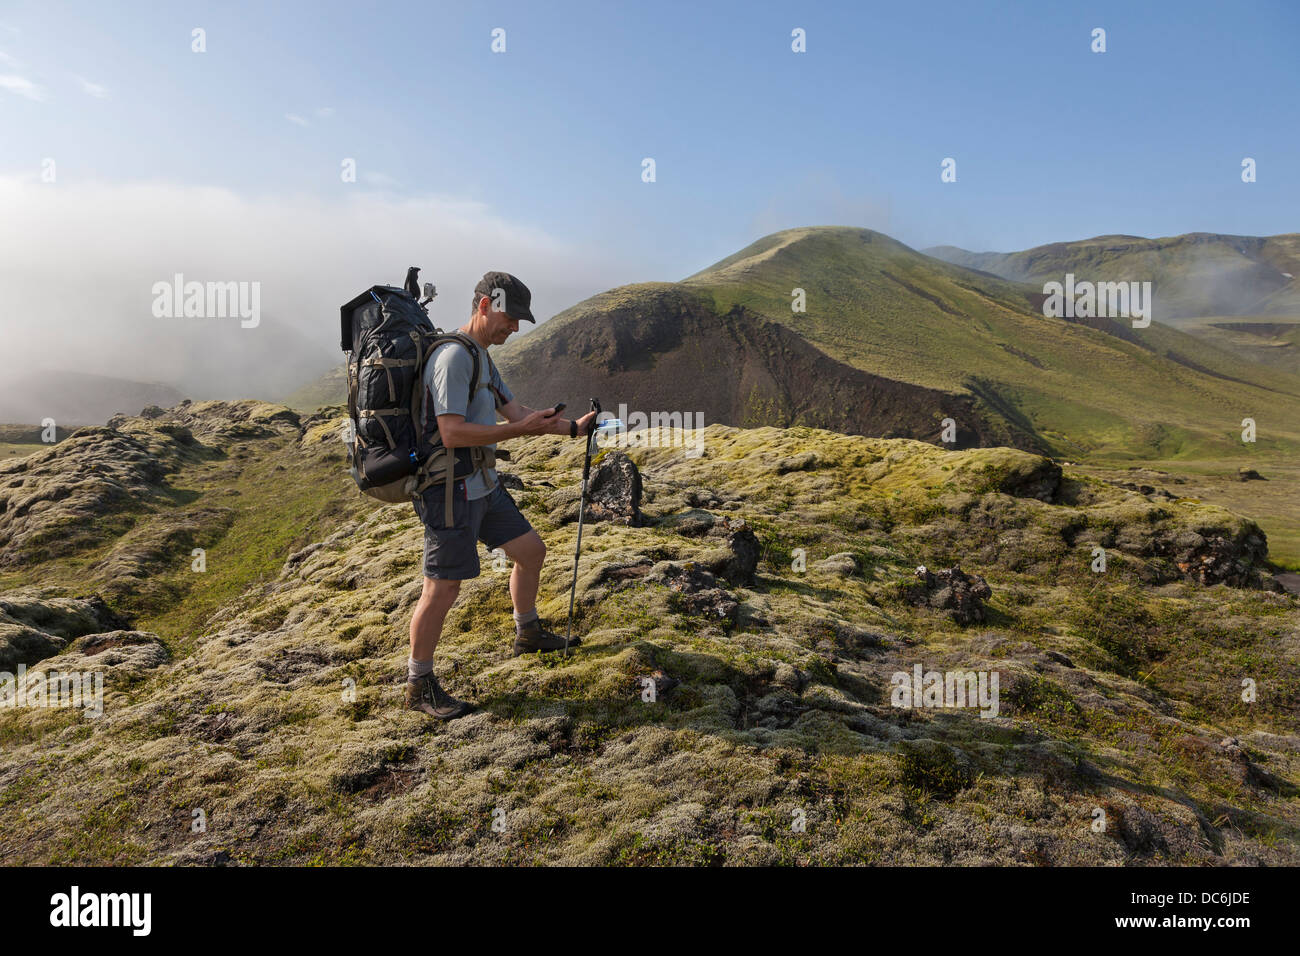 Hiker Using Smartphone While Trekking in Iceland - Stock Image